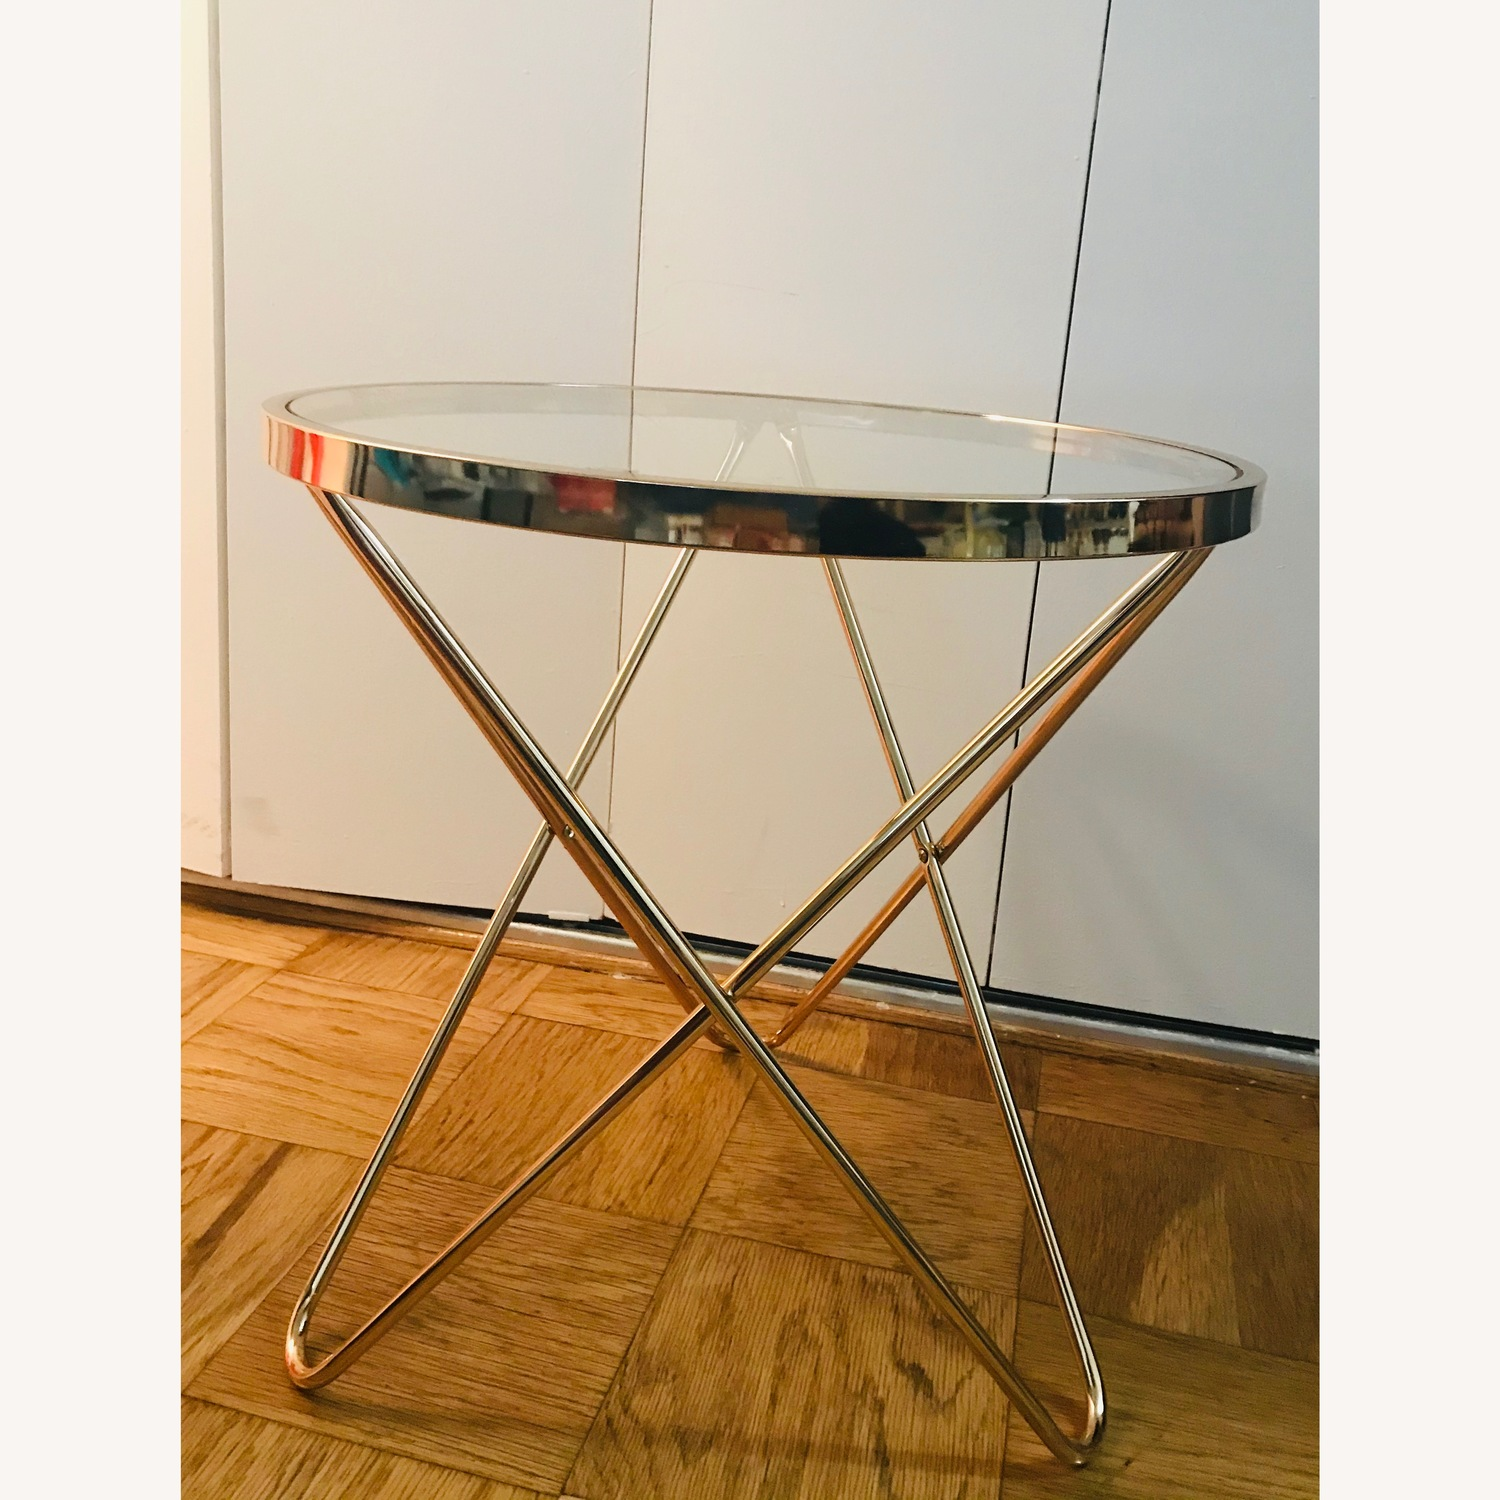 Round Rose Gold Metal Side Table w/ Glass Top - image-1